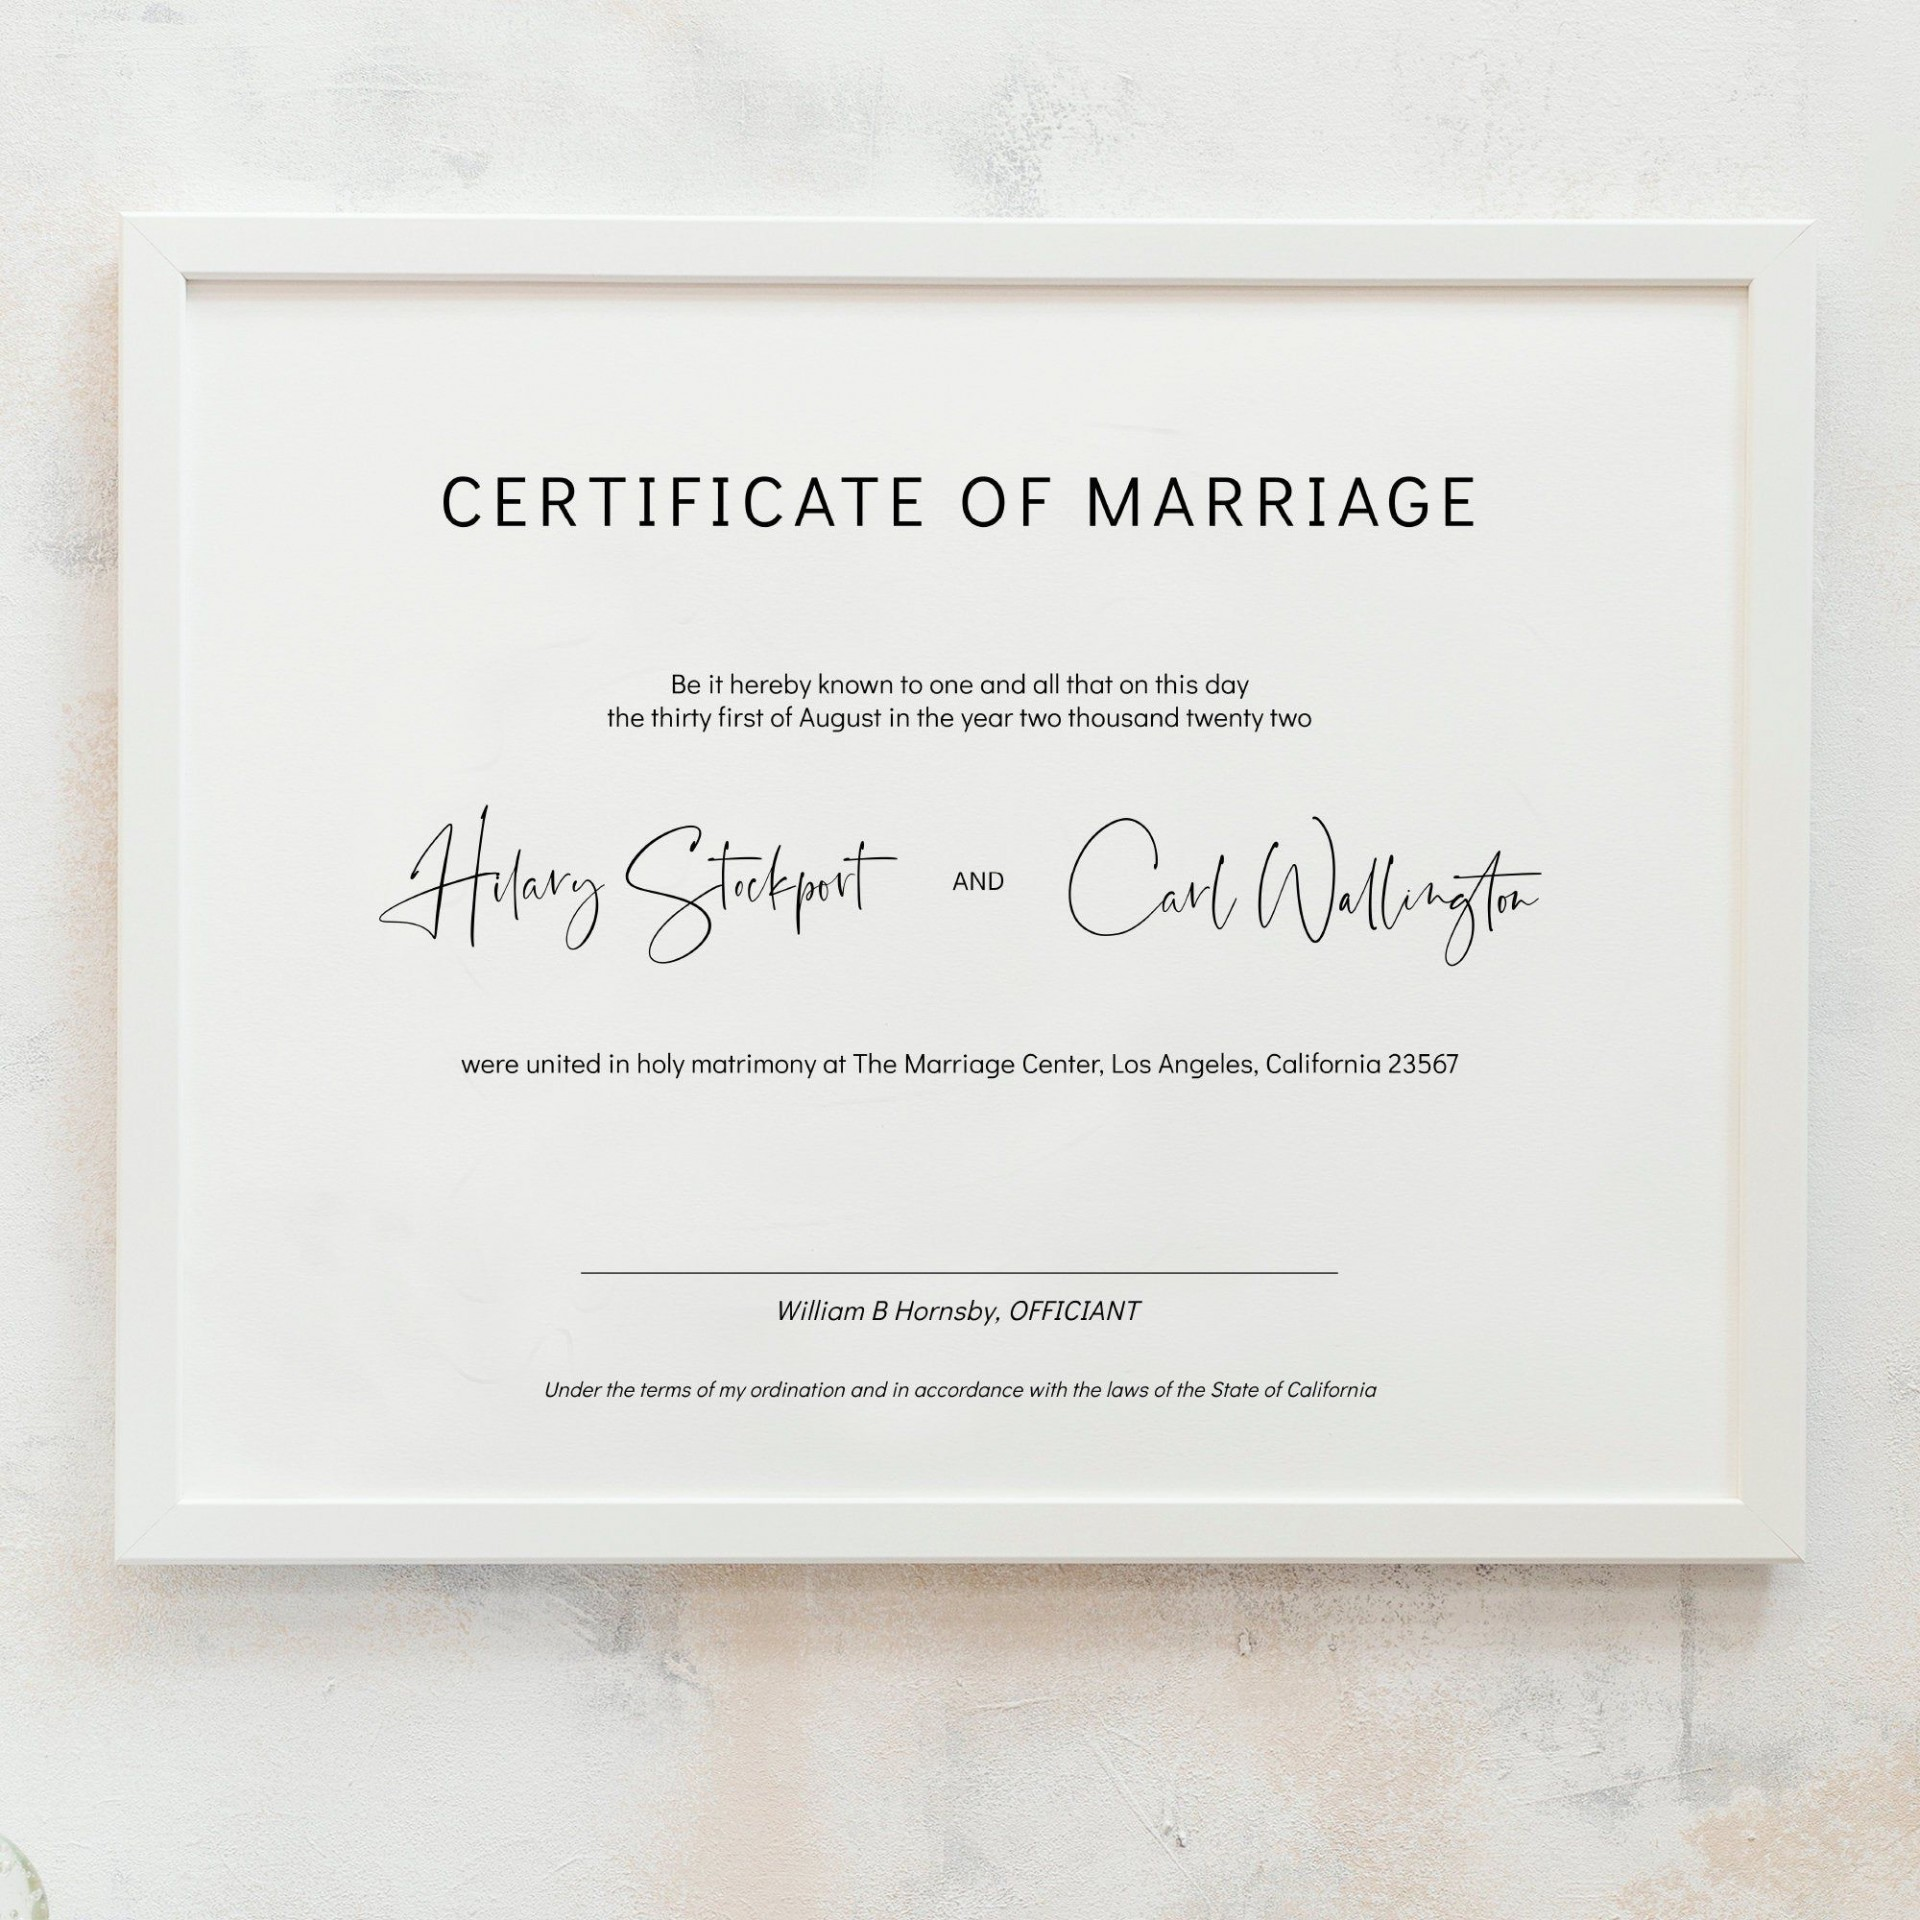 010 Unique Free Marriage Certificate Template Idea  Renewal Translation From Spanish To English Wedding Download1920